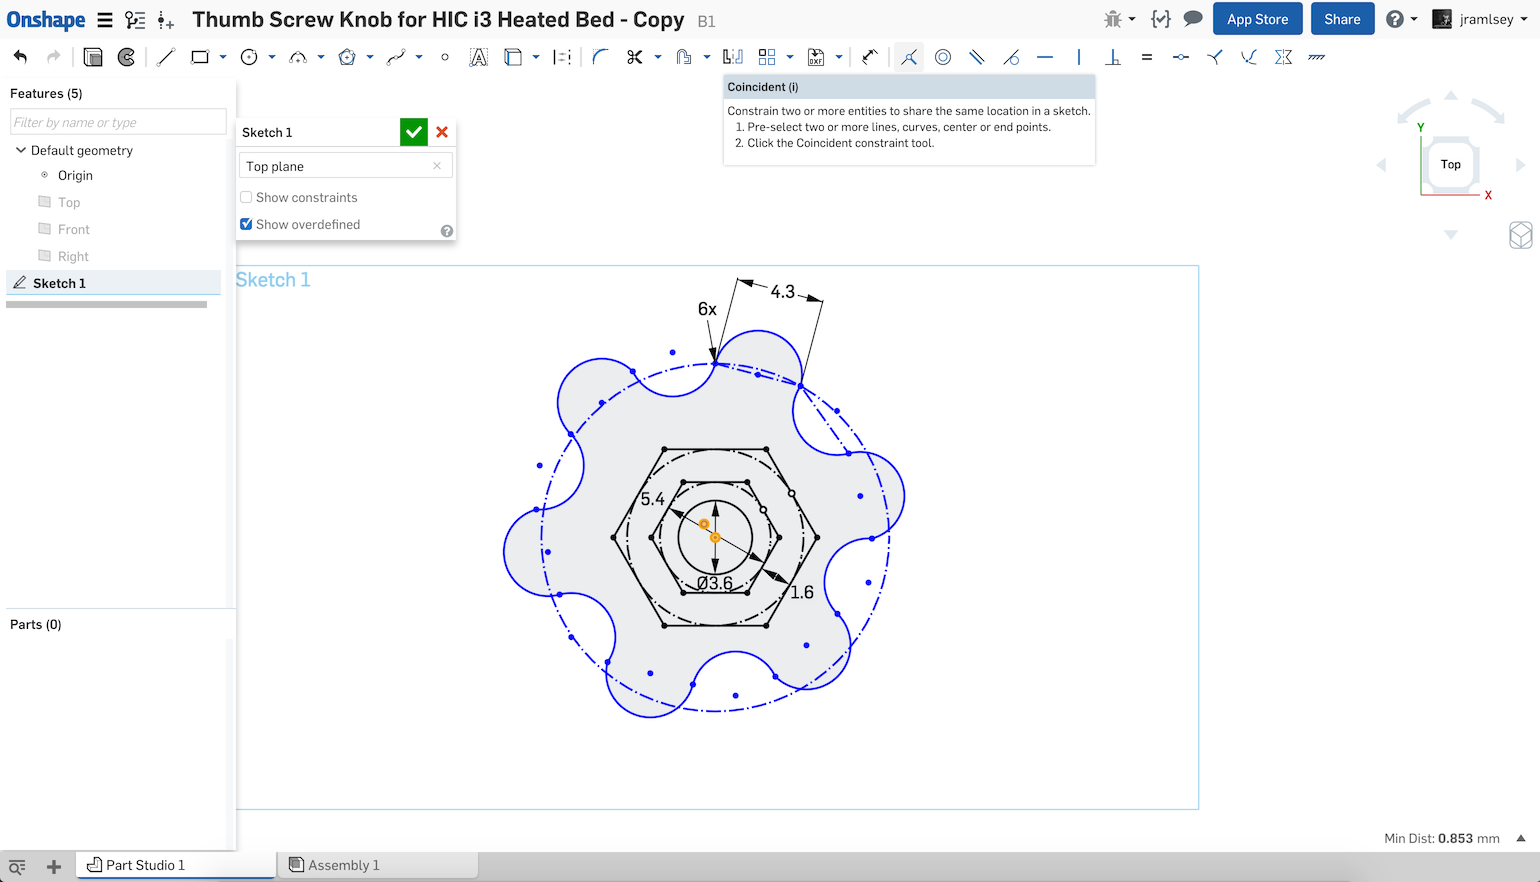 Constraints: How do I figure out what's missing? — Onshape